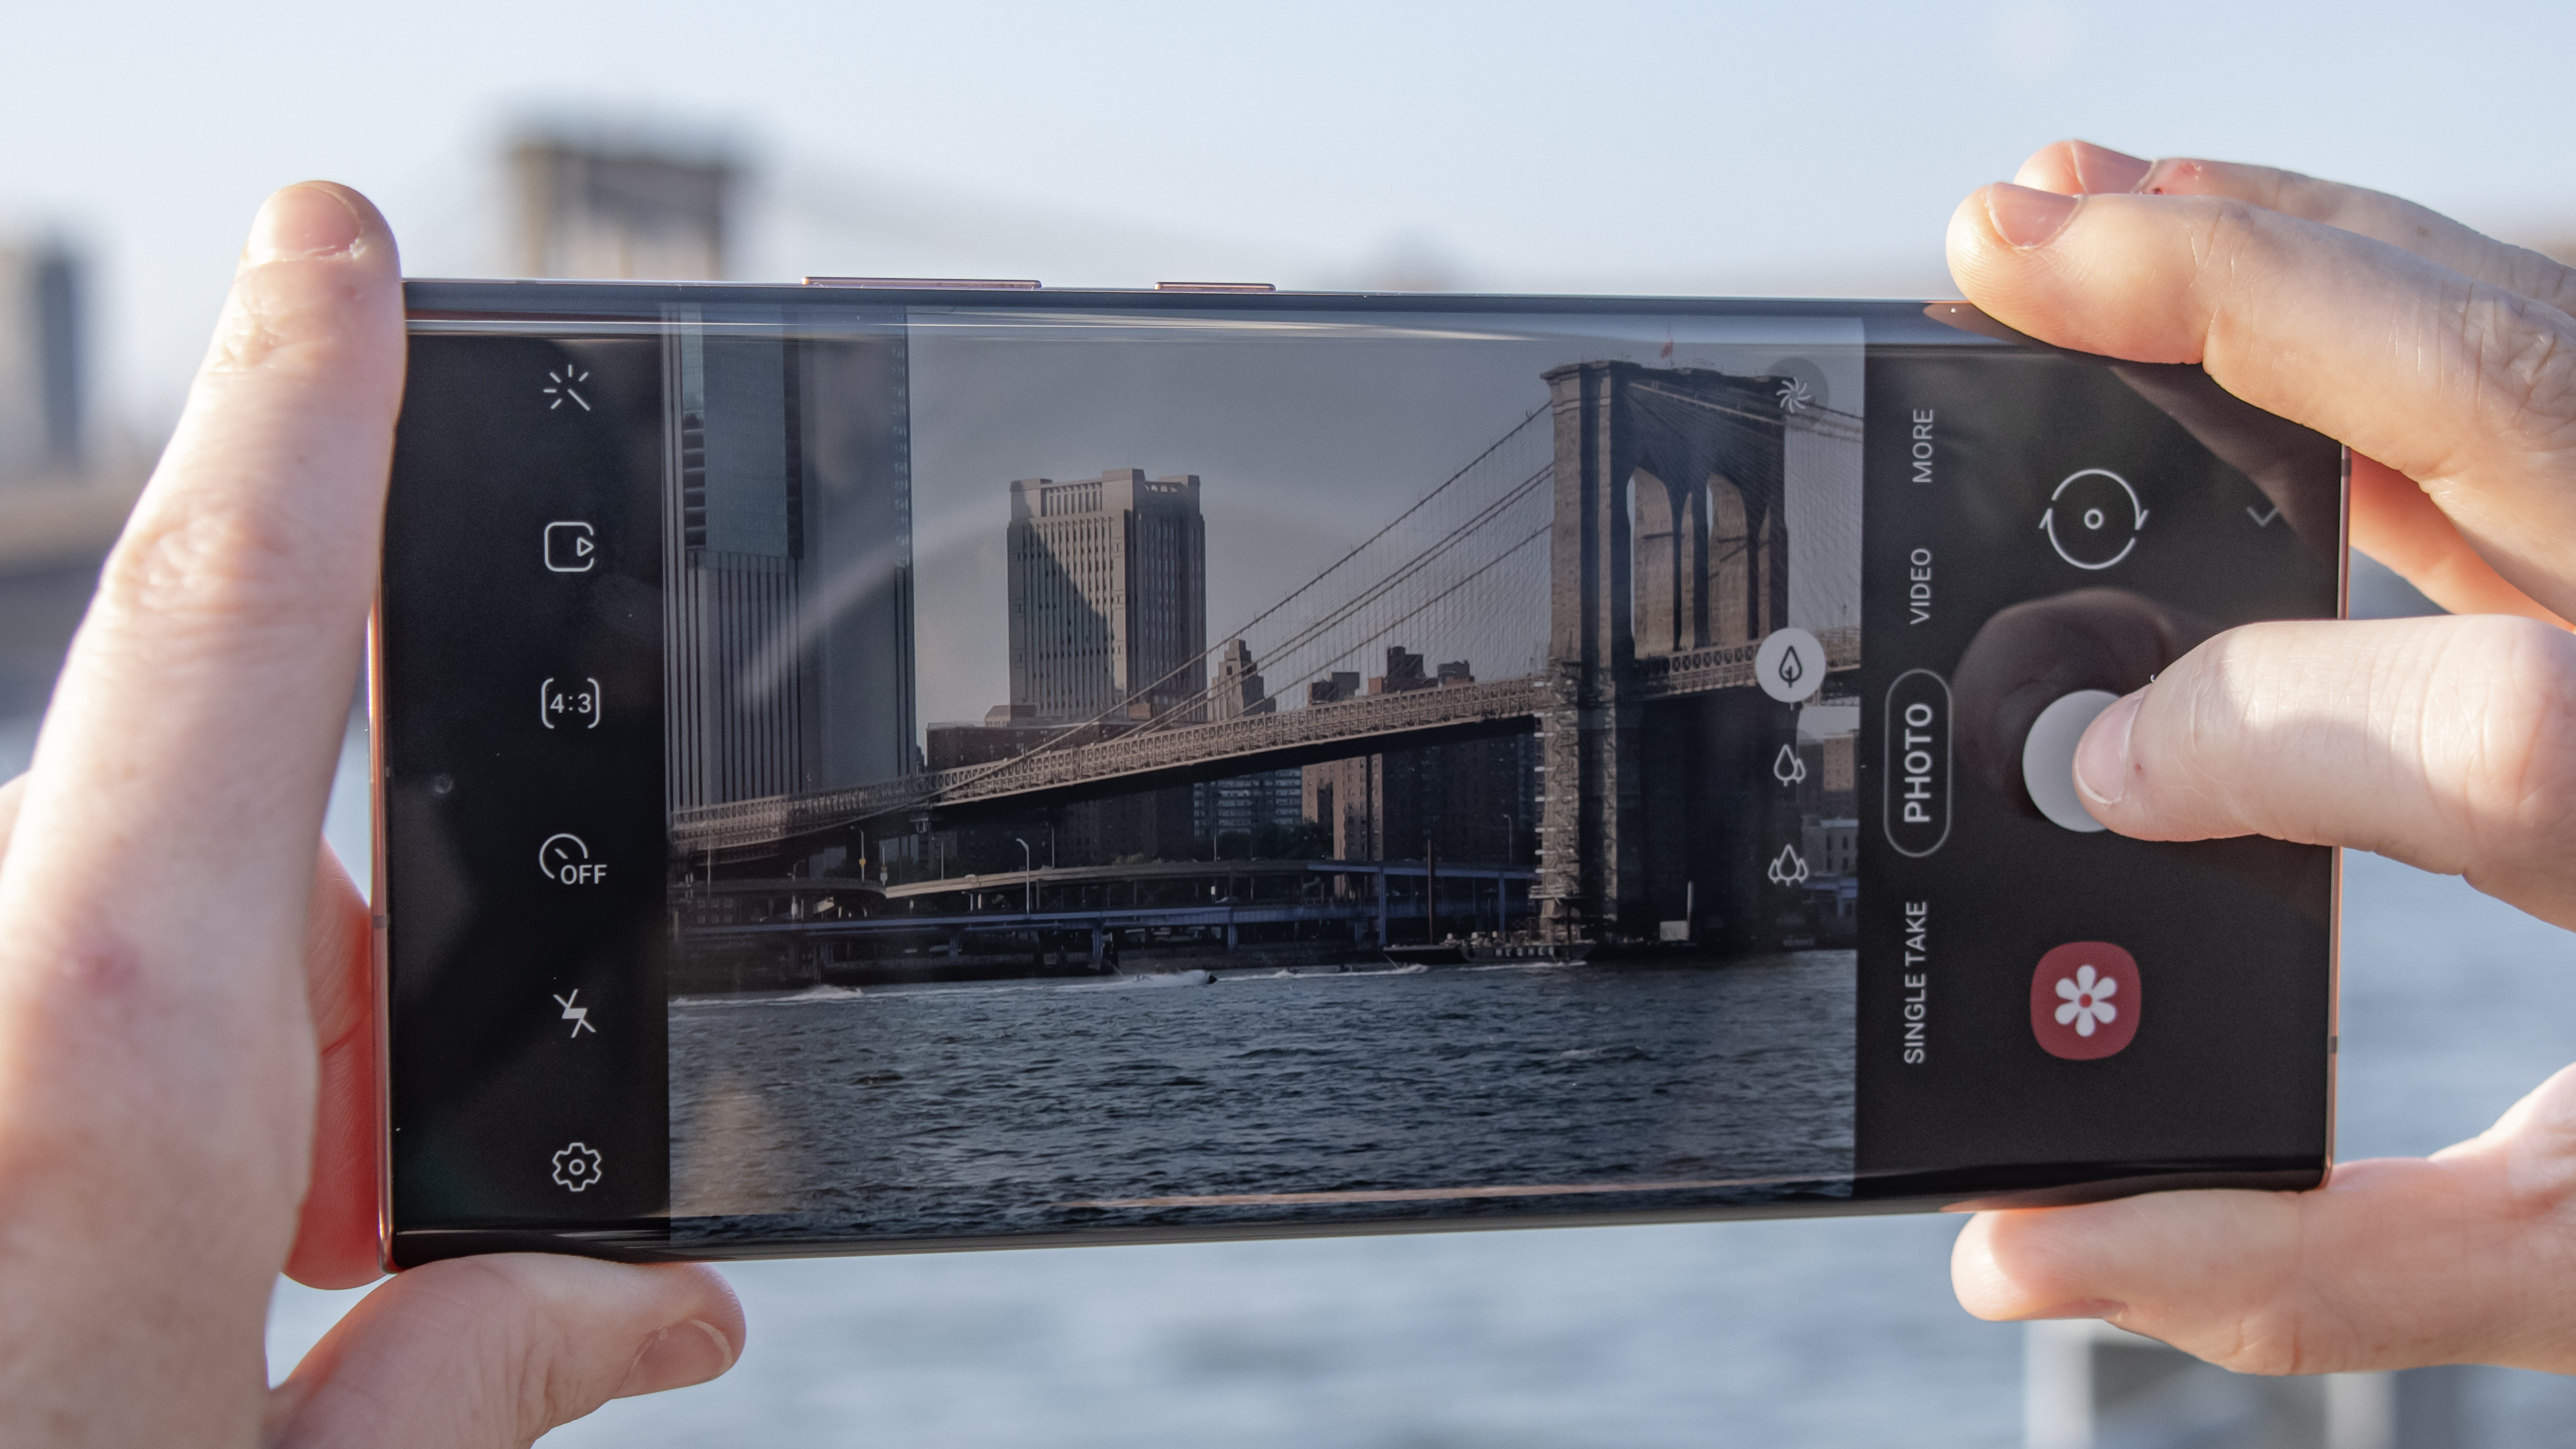 Samsung Galaxy Note 20 Ultra camera test: 50 zoom photo samples ...